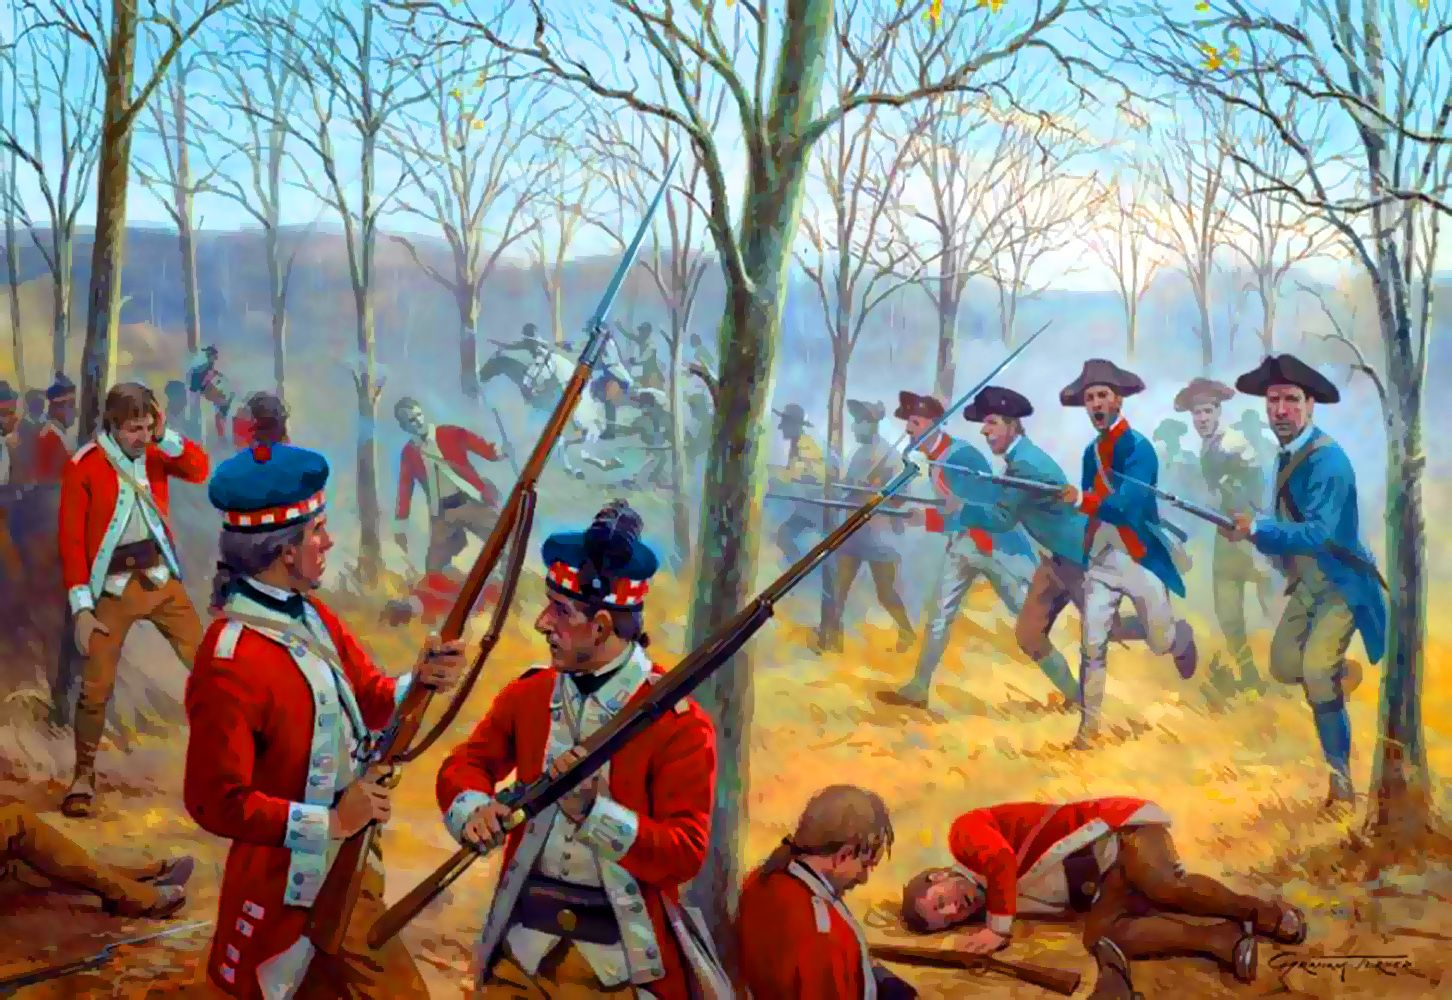 battle of cowpens A stunning example of military prowess and skilled leadership, the battle of cowpens near chesnee, south carolina was a critical american victory in the revolutionary war.